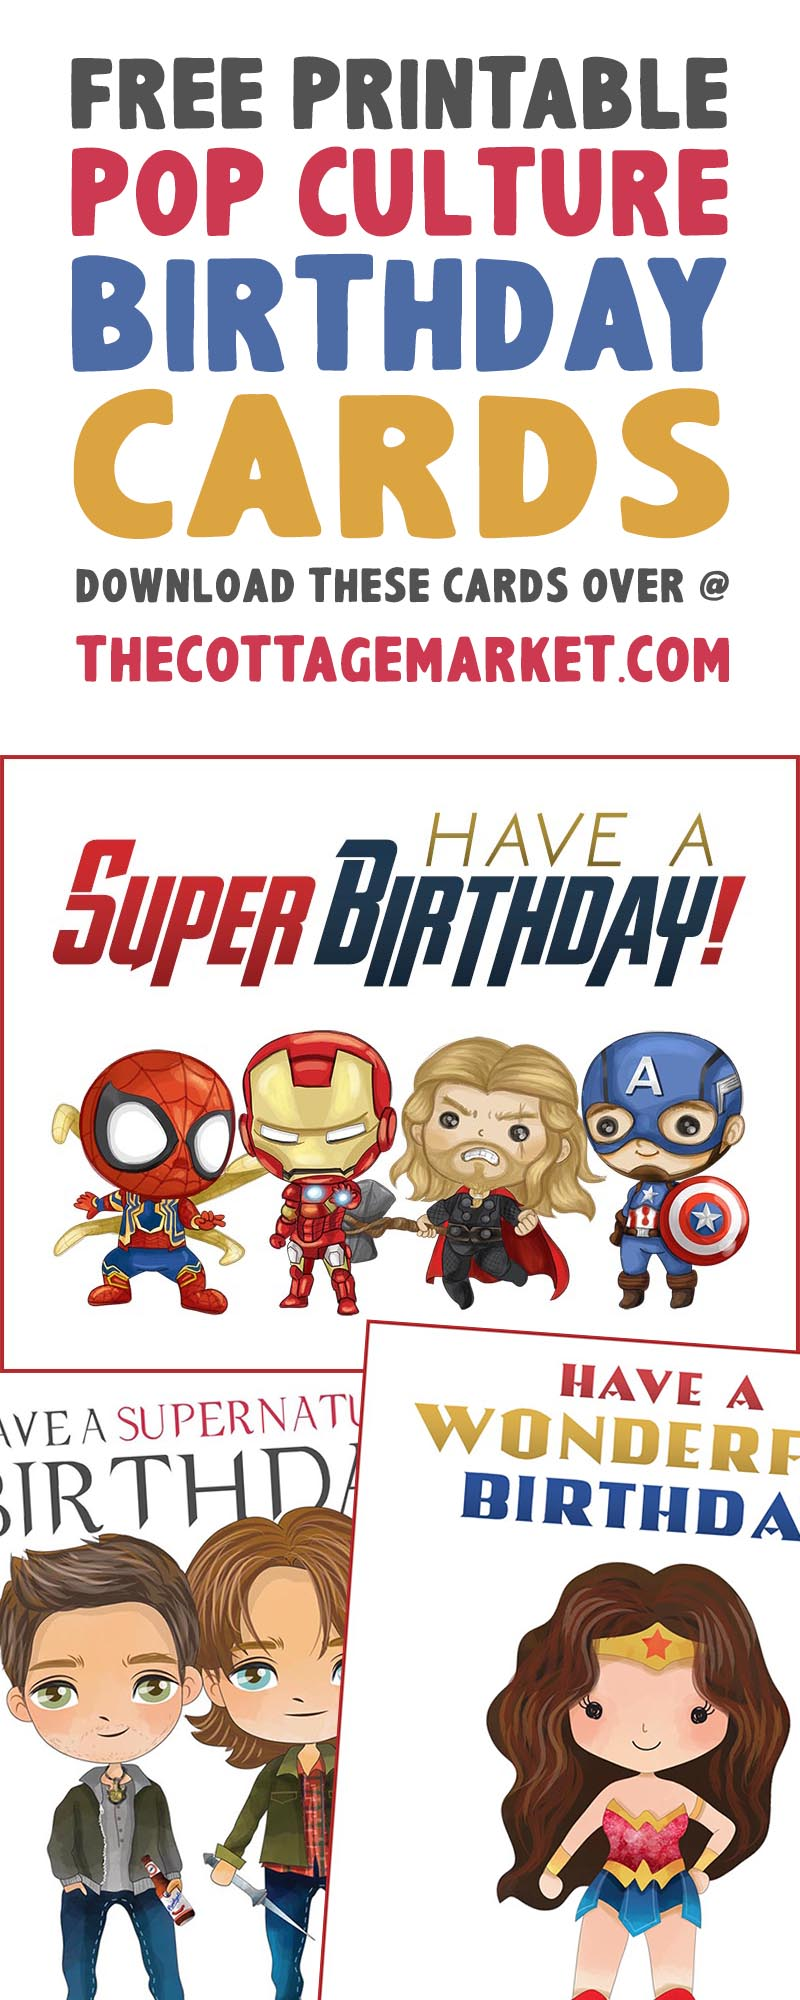 https://thecottagemarket.com/wp-content/uploads/2020/01/TCM-BIRTHDAY-POP-T-1.jpg